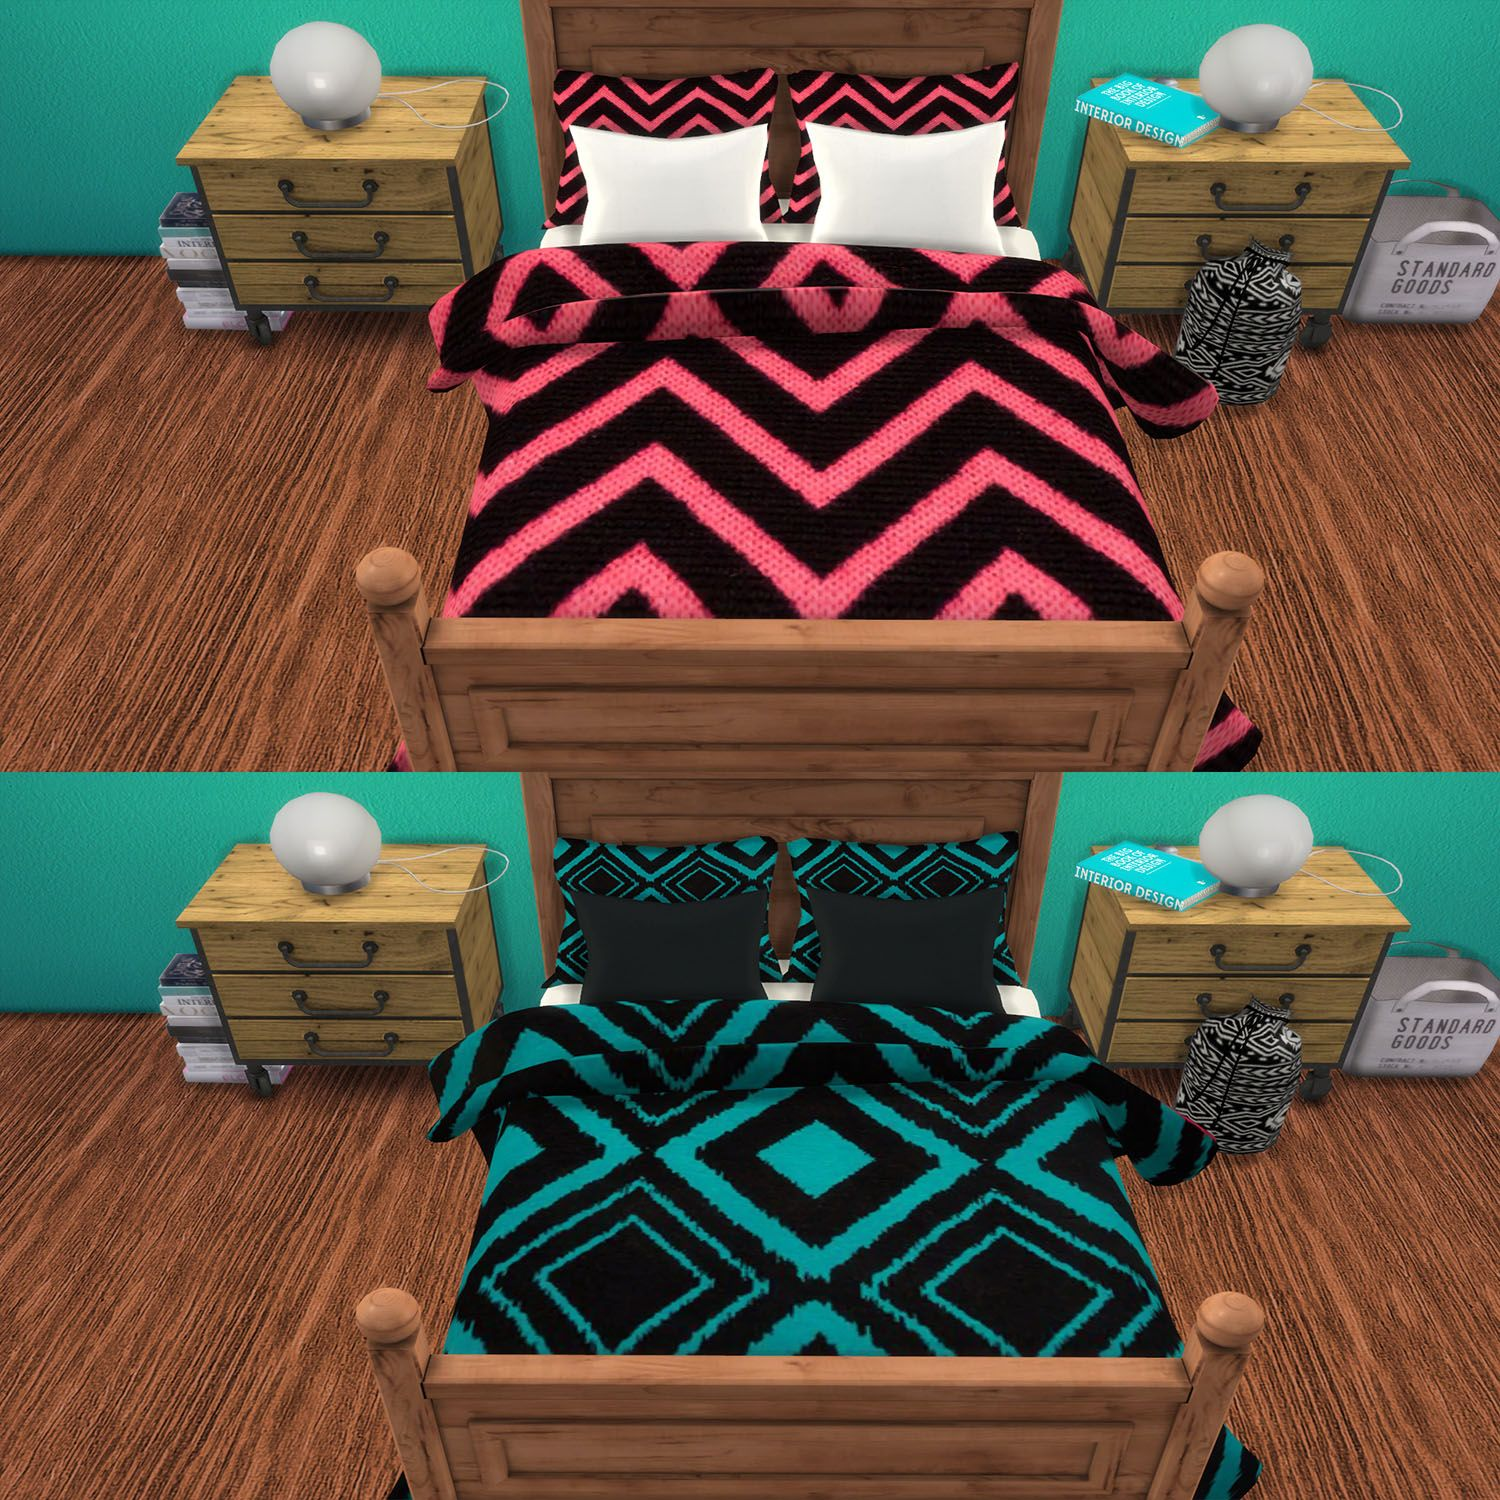 Sims 4 CC's The Best Blankets & Pillows by CC For Sims